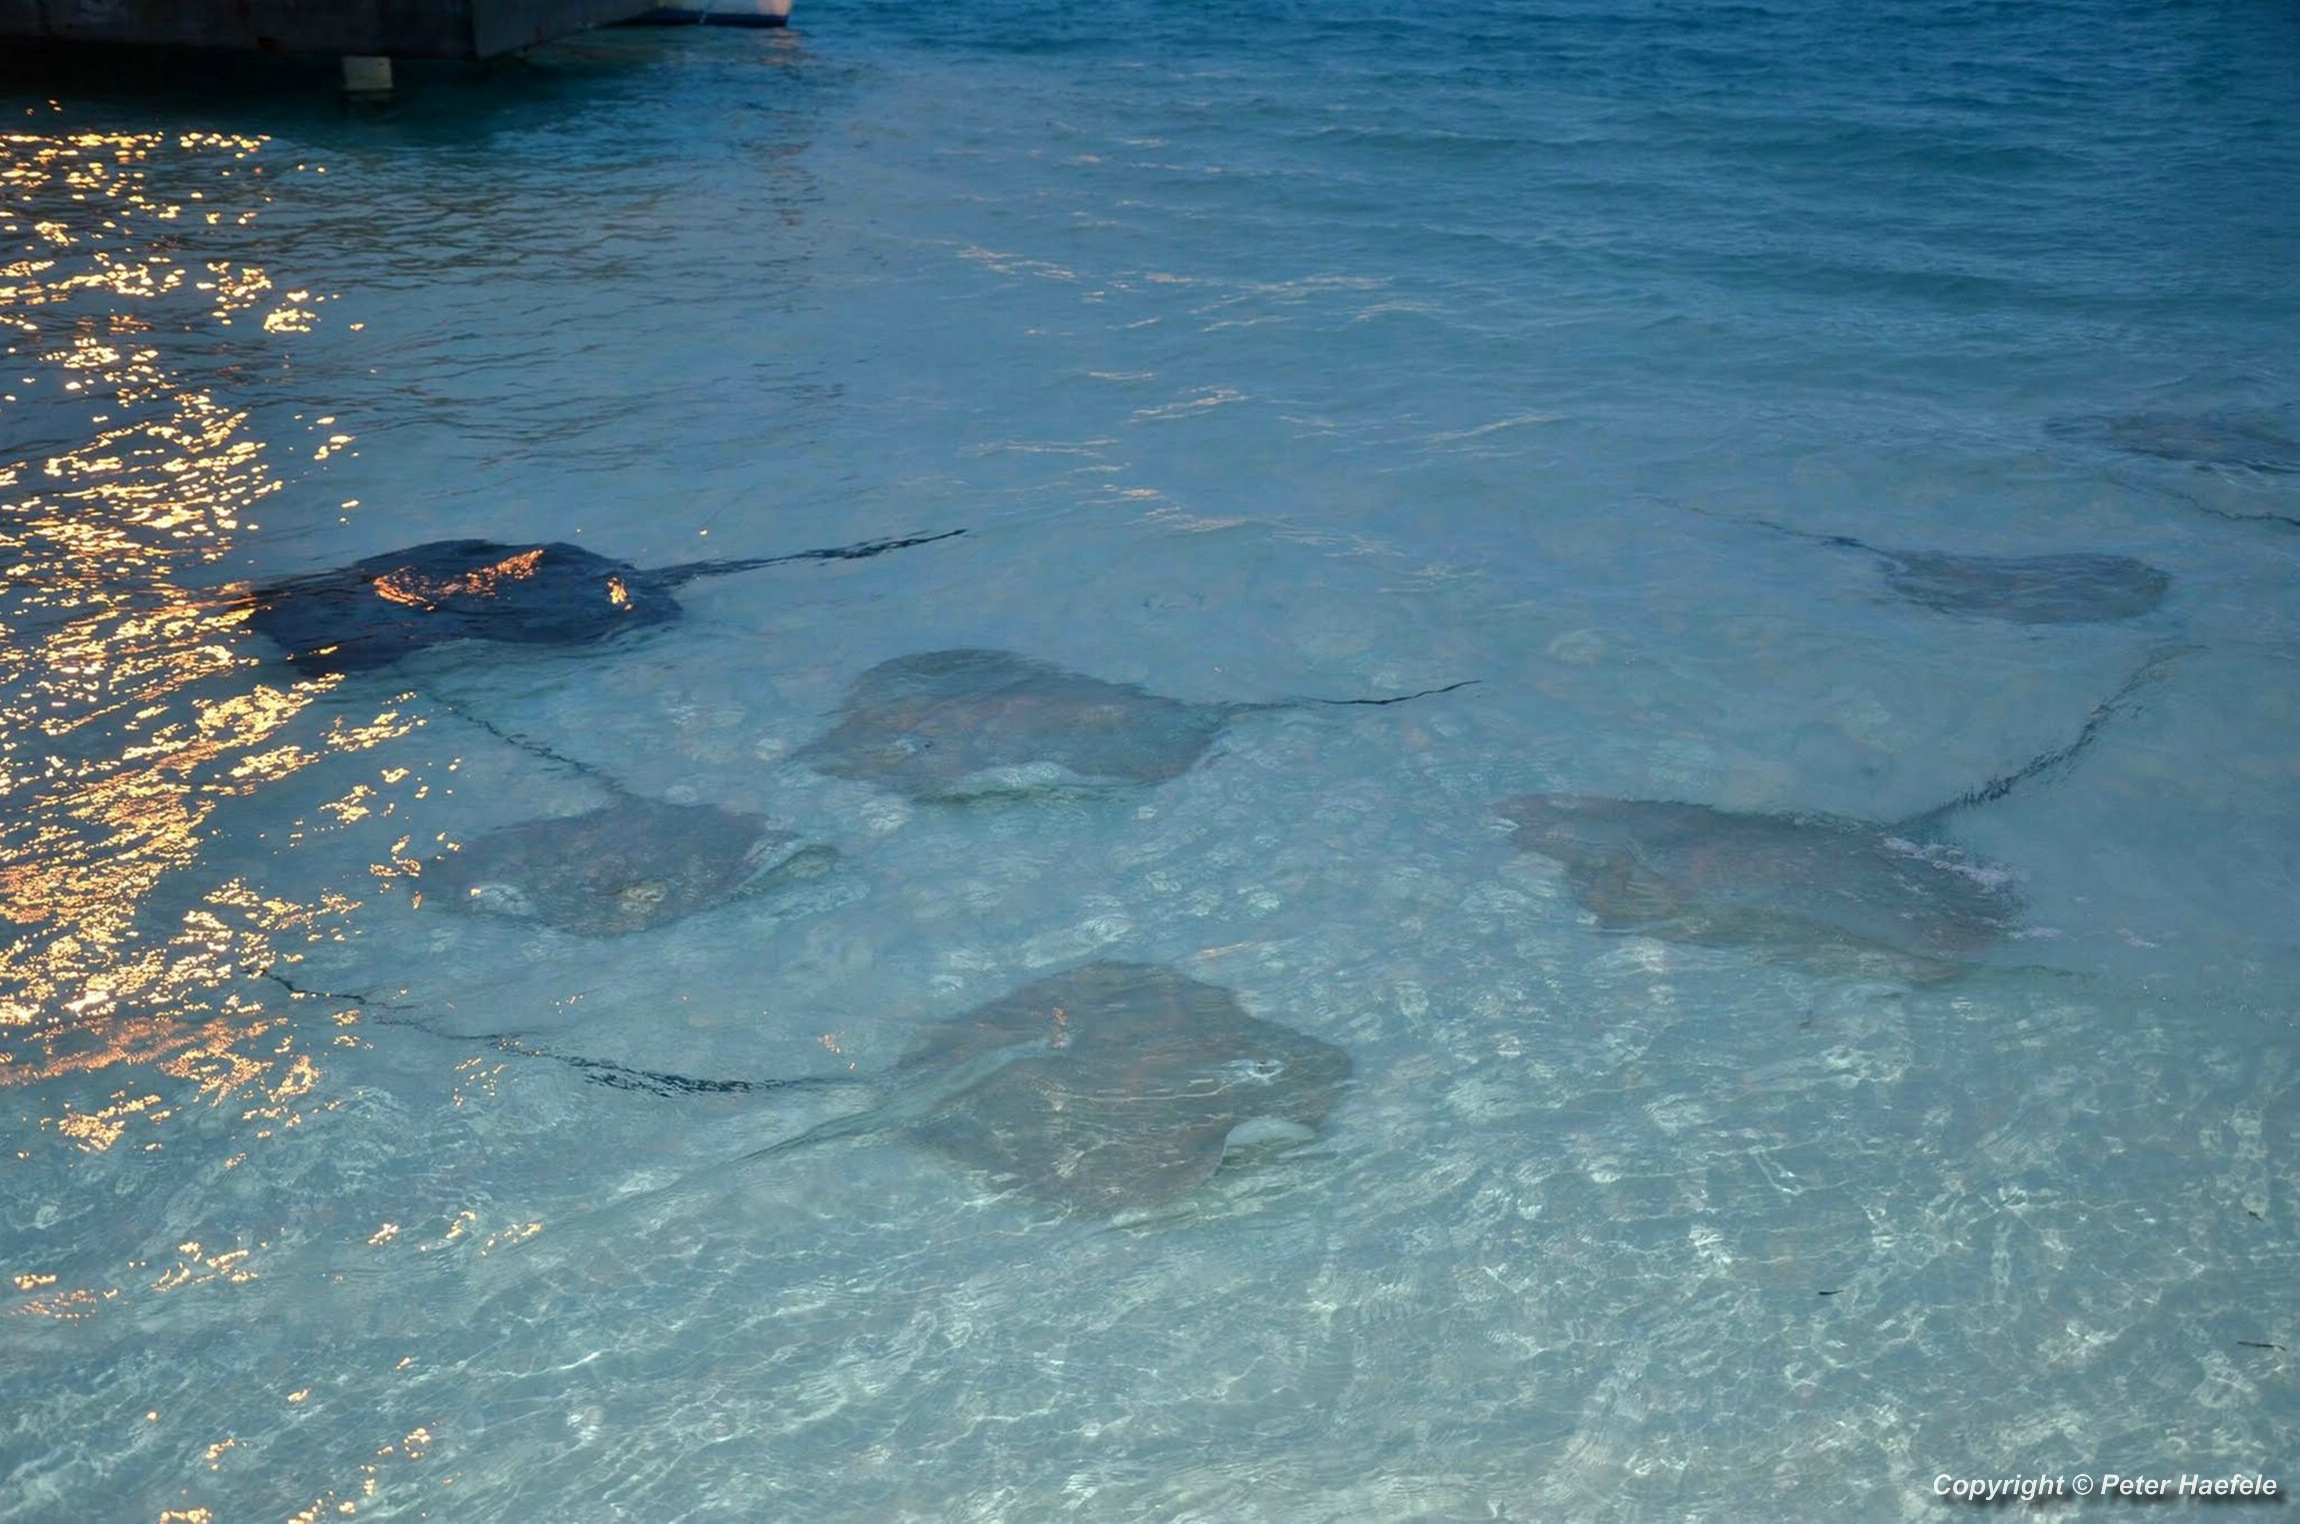 Stachelrochen Fuetterung (Stingray feeding) vor Sun Island, South Ari Atoll Maldives